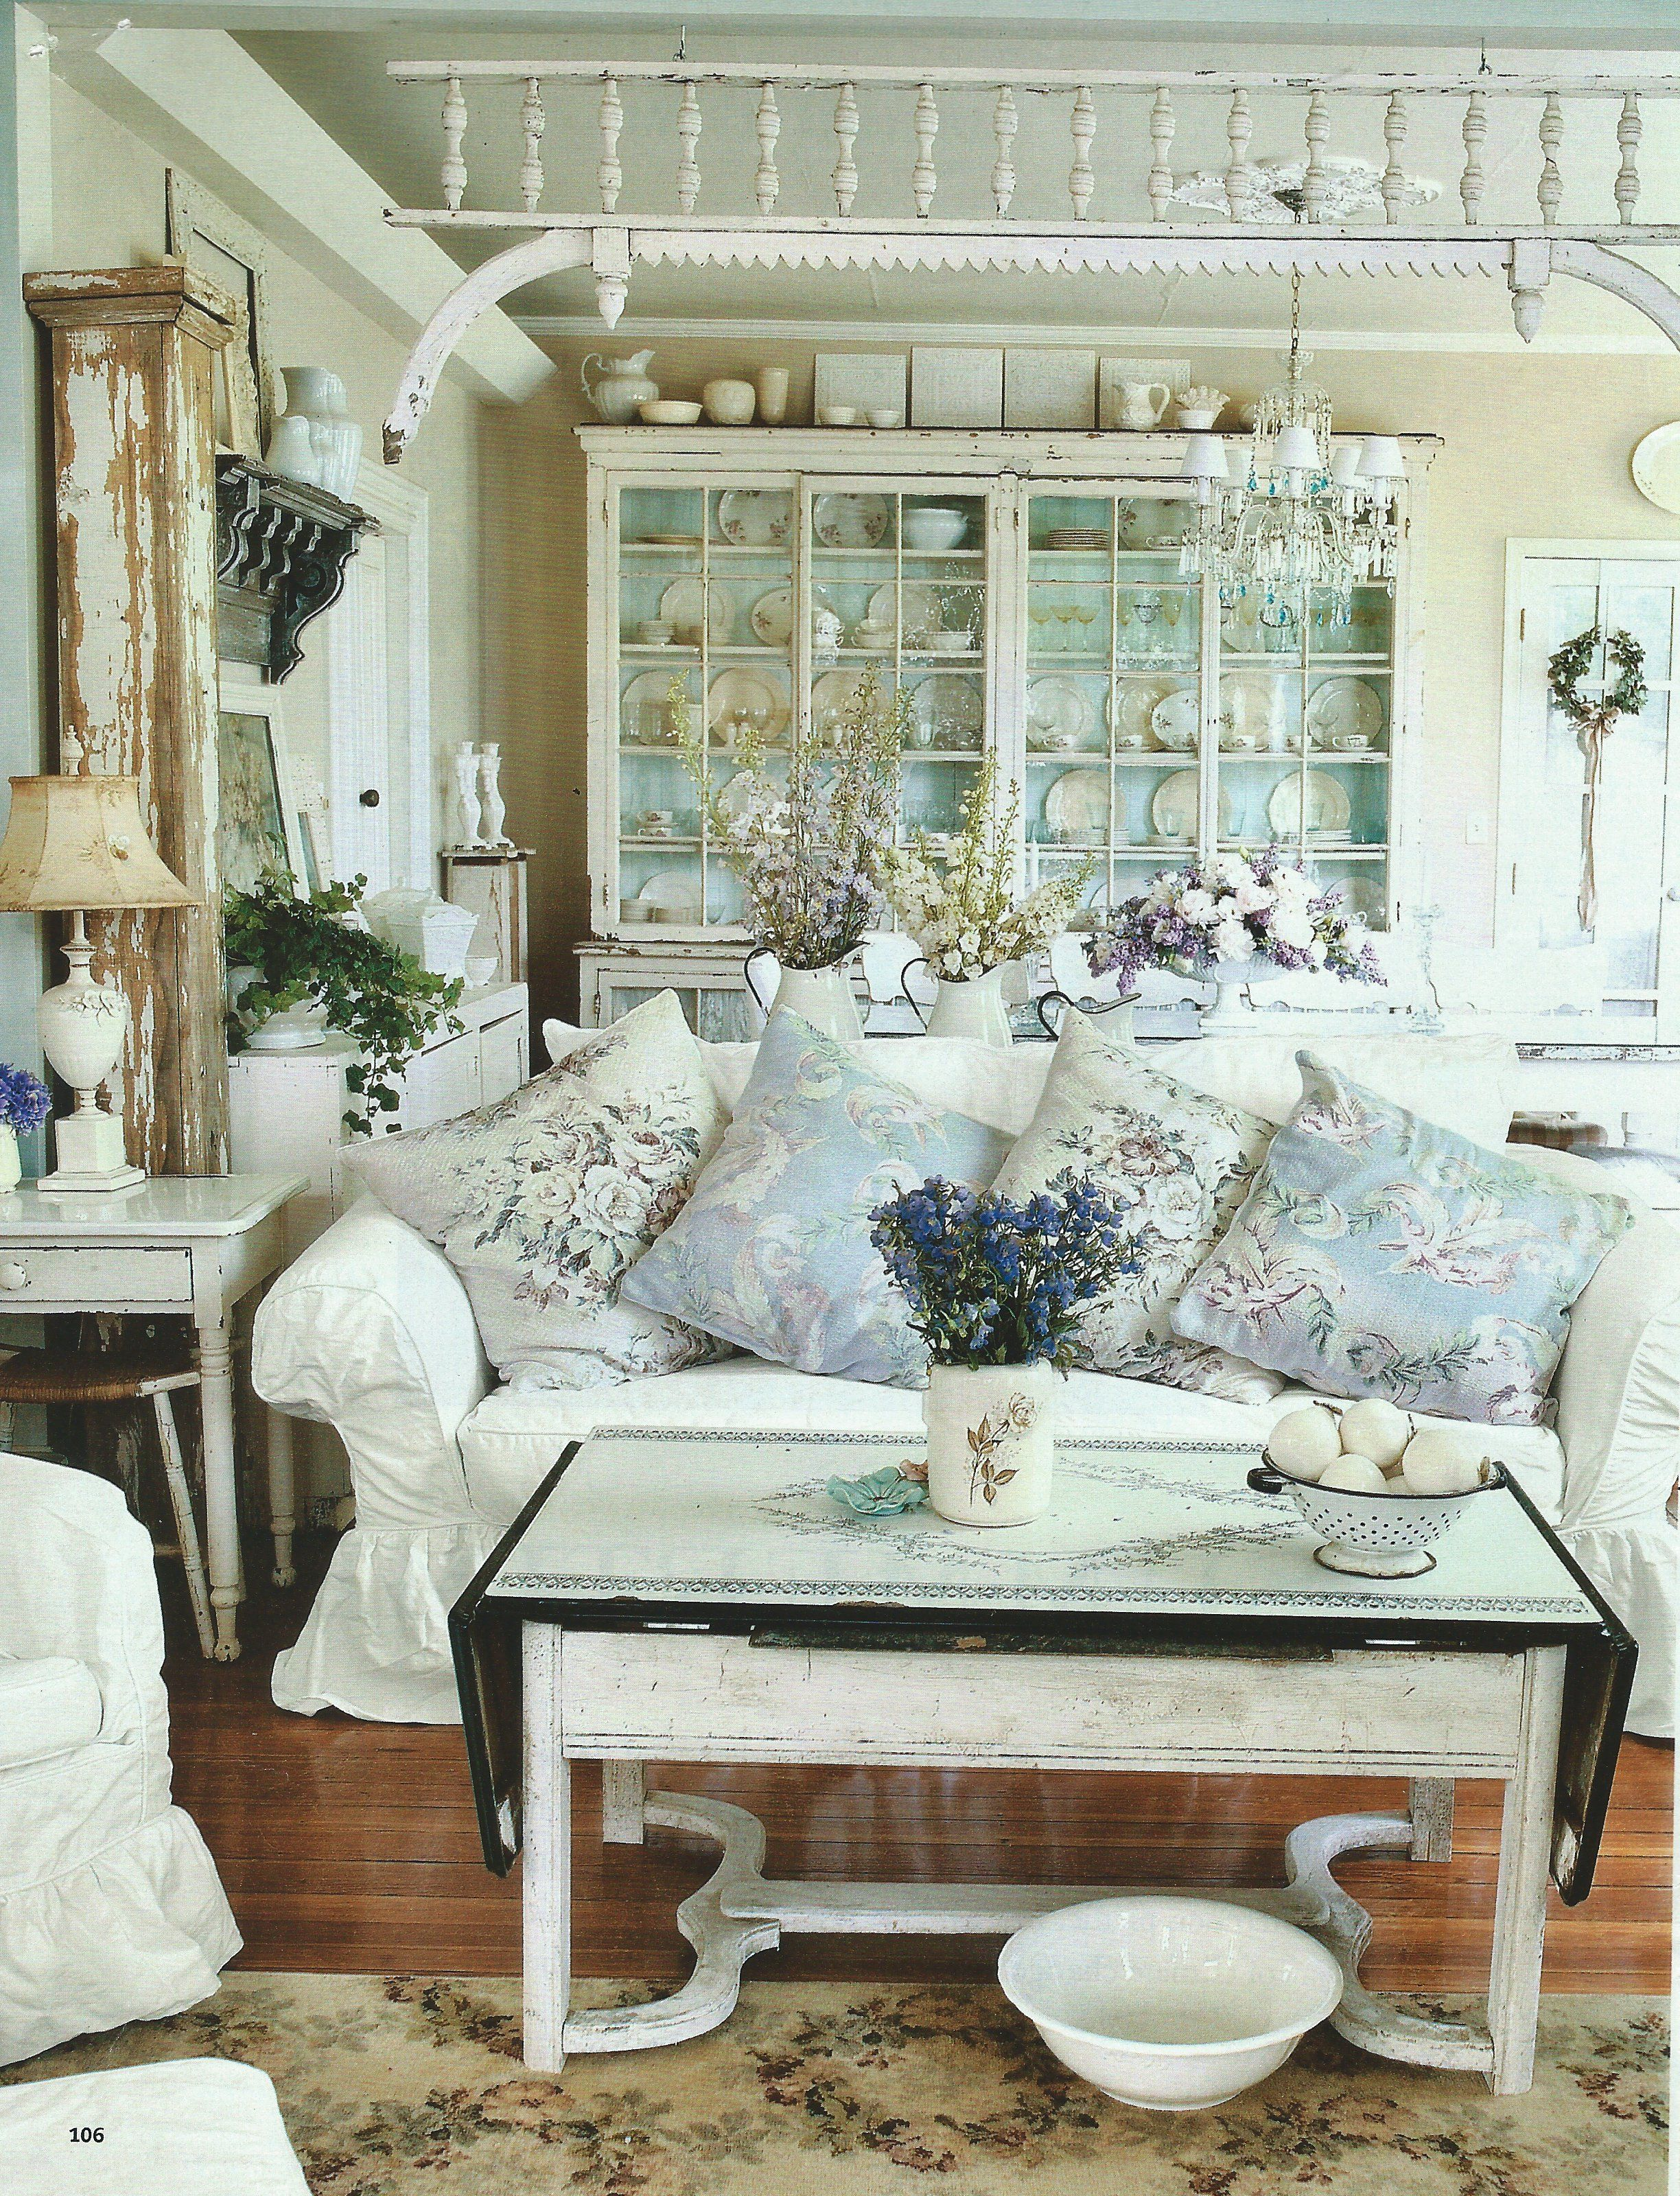 antique pieces and shabby chic coziness | HOME AND FURNITURE DESIGN ...